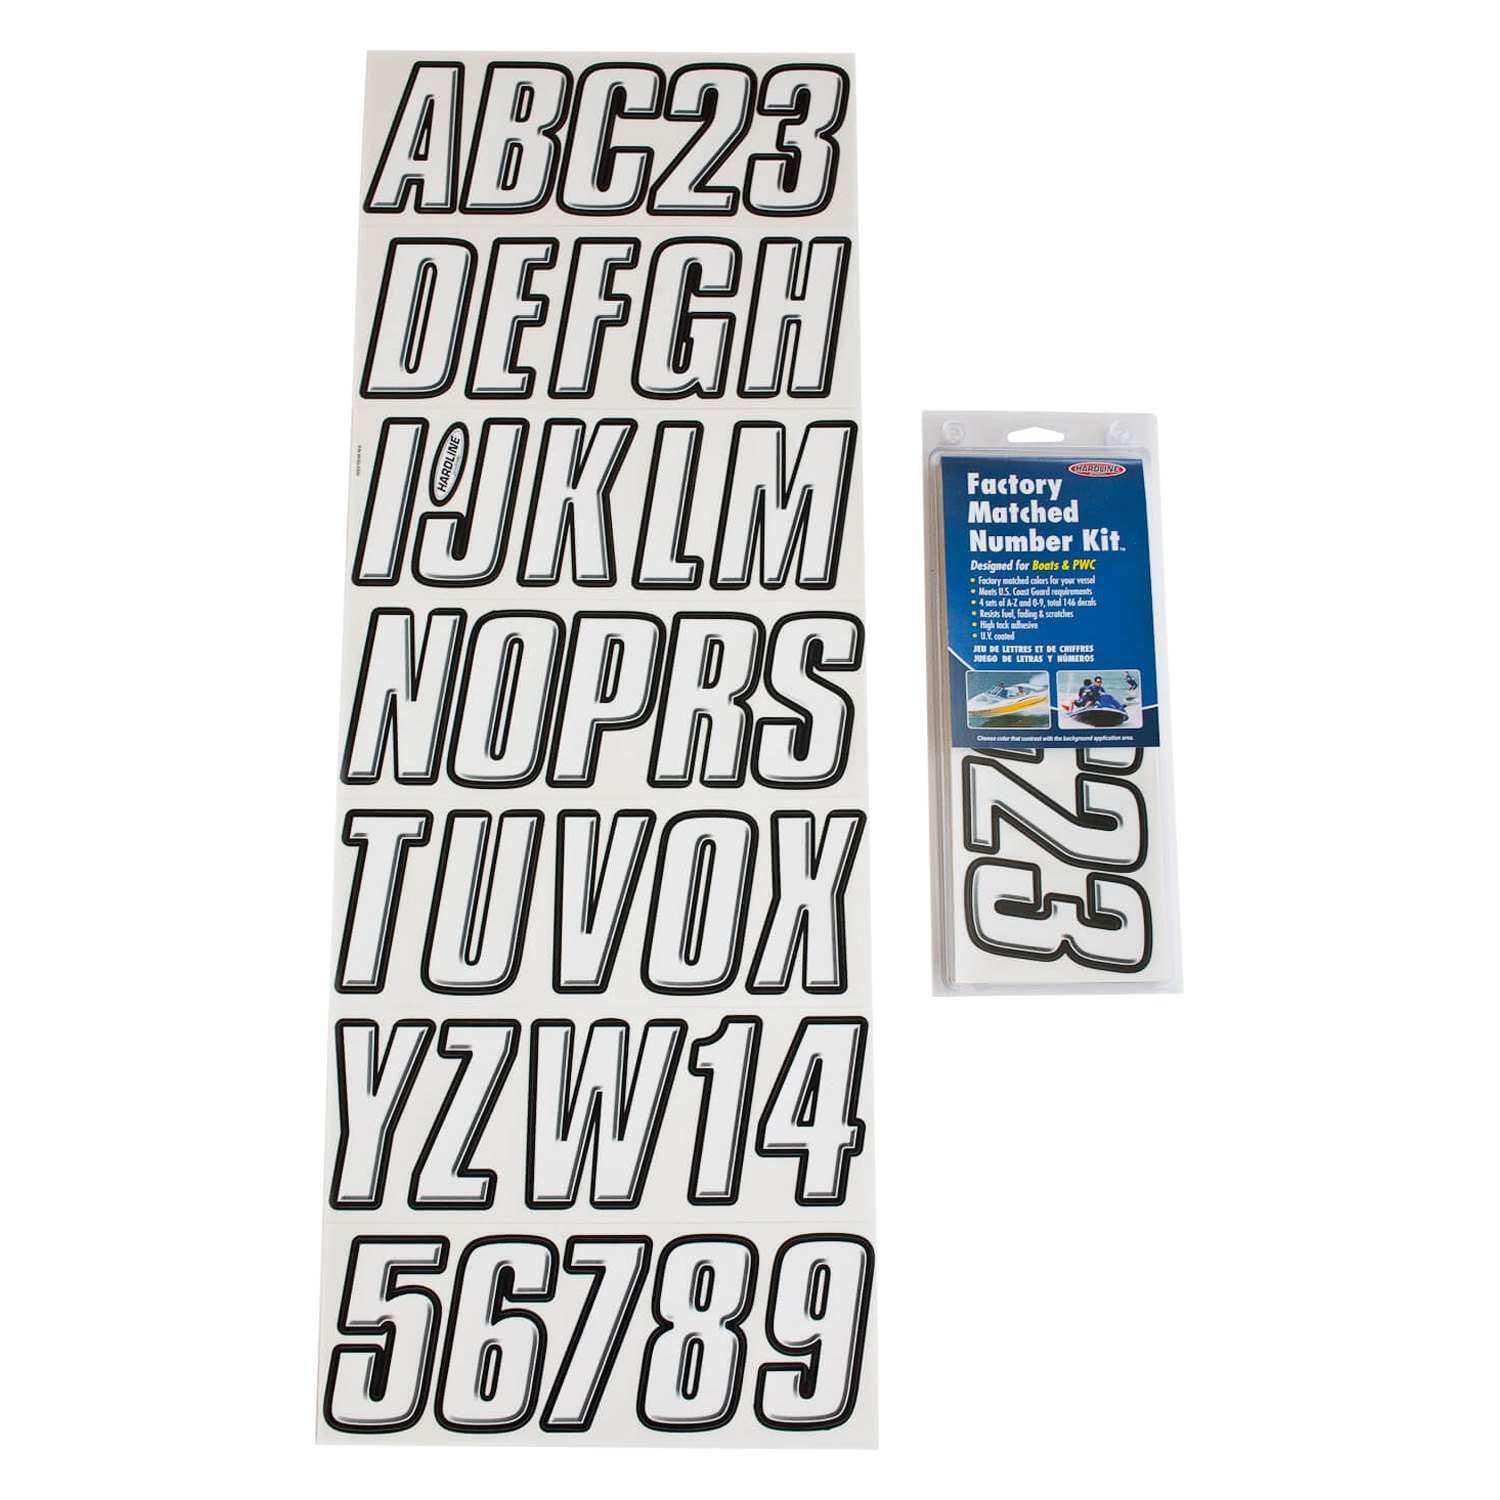 Hardline Products Whblk800 800 Series 3 White Black Boat Lettering Registration Kit